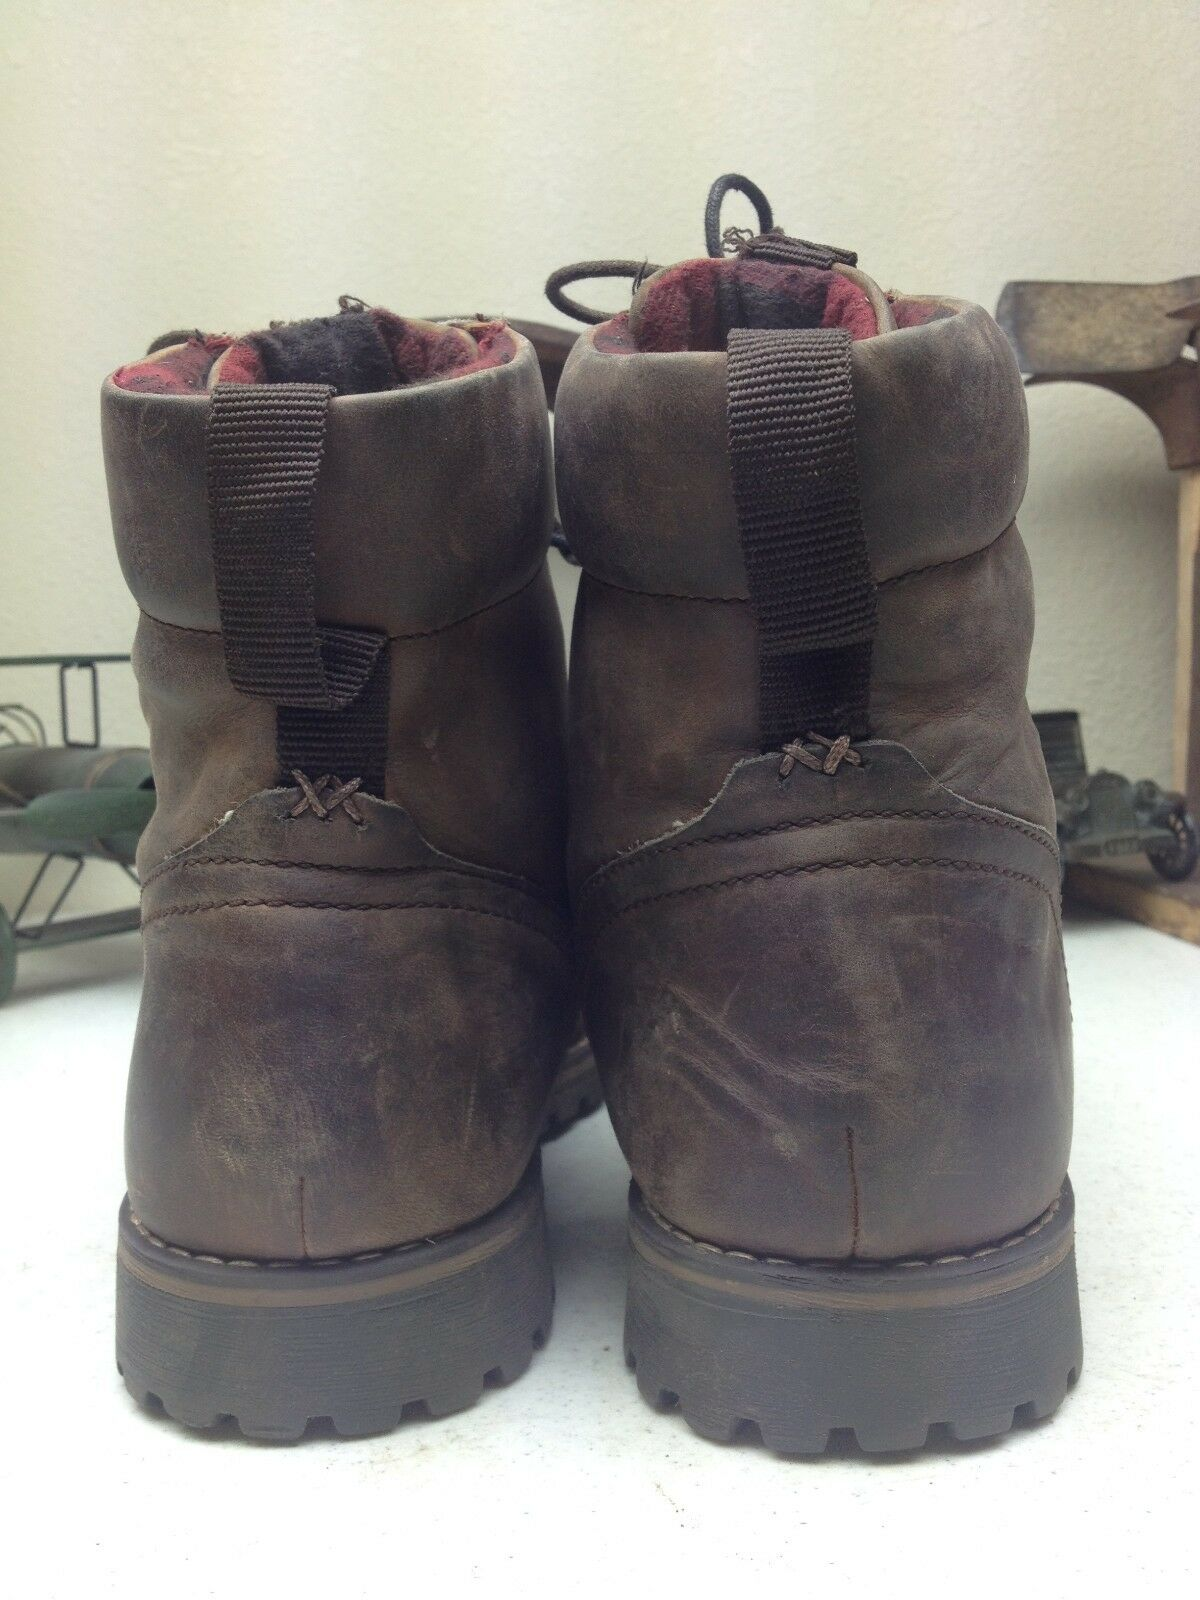 DISTRESSED NUNN BUSH Marroneee LEATHER LACE UP HIKING TRAIL WORK WORK WORK BOSS stivali 11 M f1e547